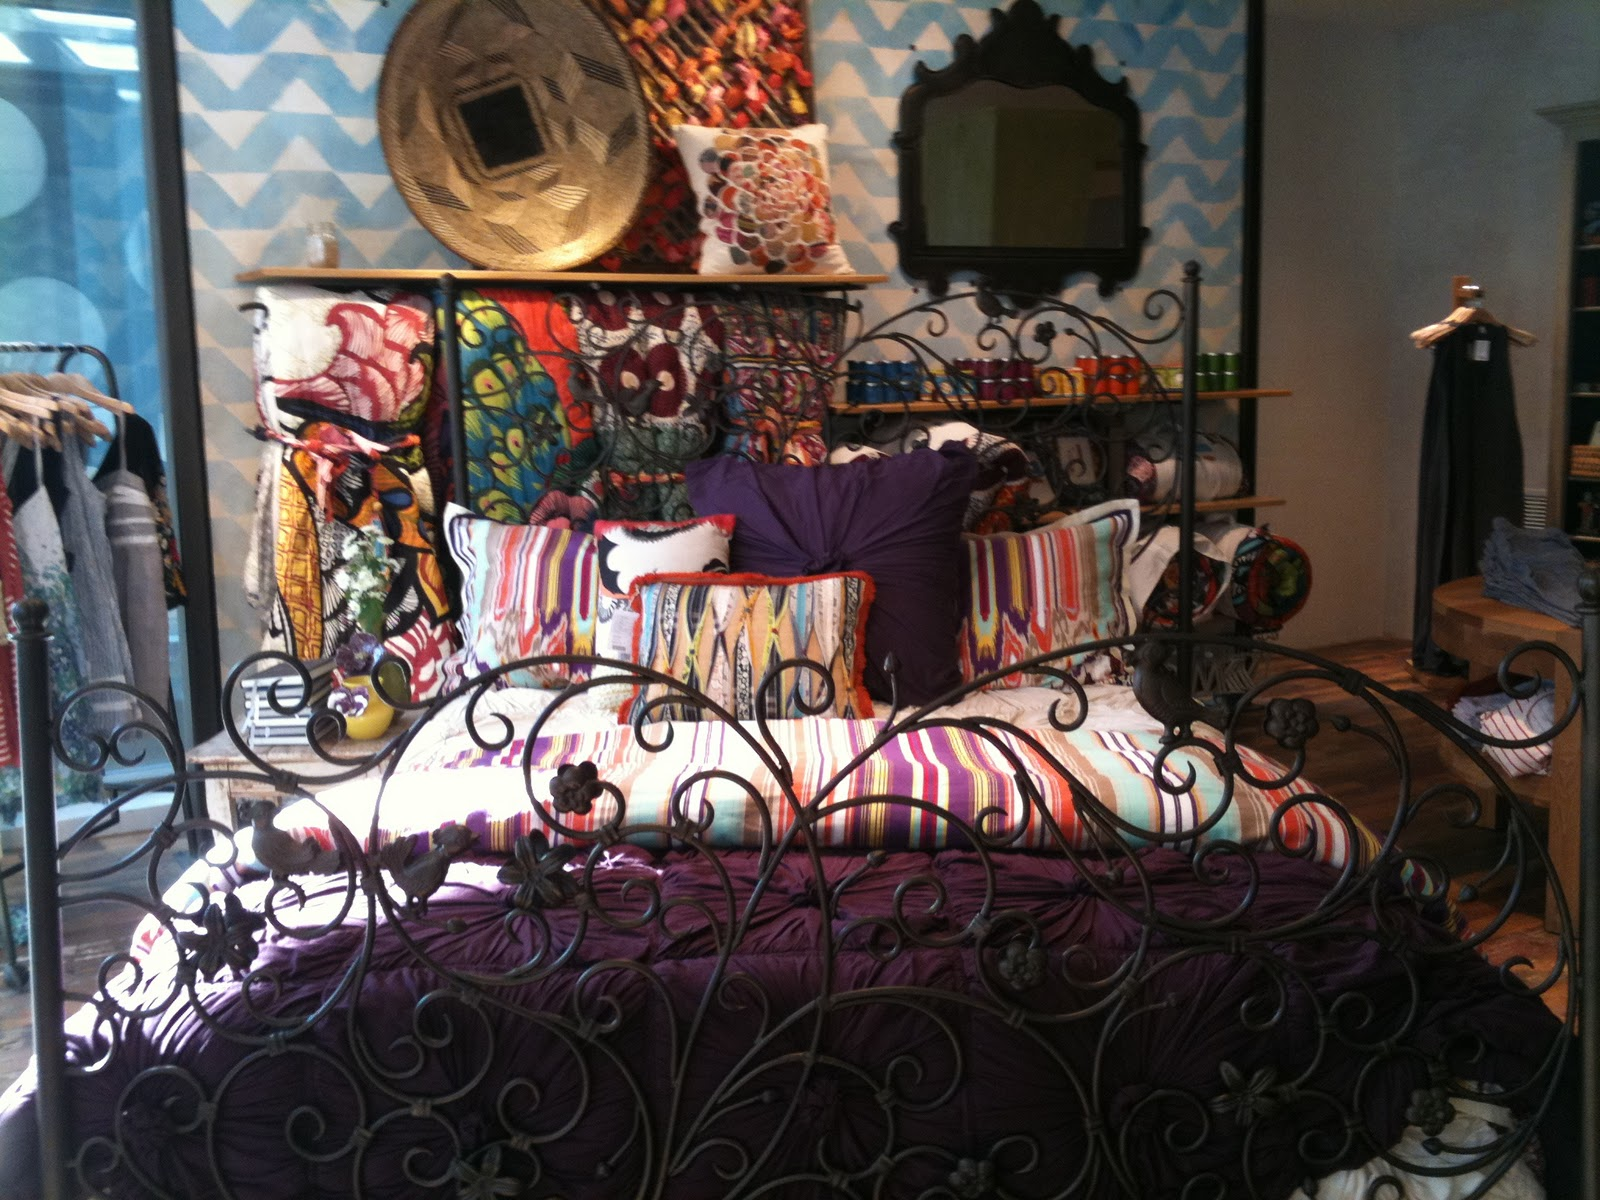 Anthropologie bedding - One Day While Working At Anthropologie I Was Given A Merchandising Task I Was Asked To Choose Bedding Steam It And Make The Bed In Our Home Section